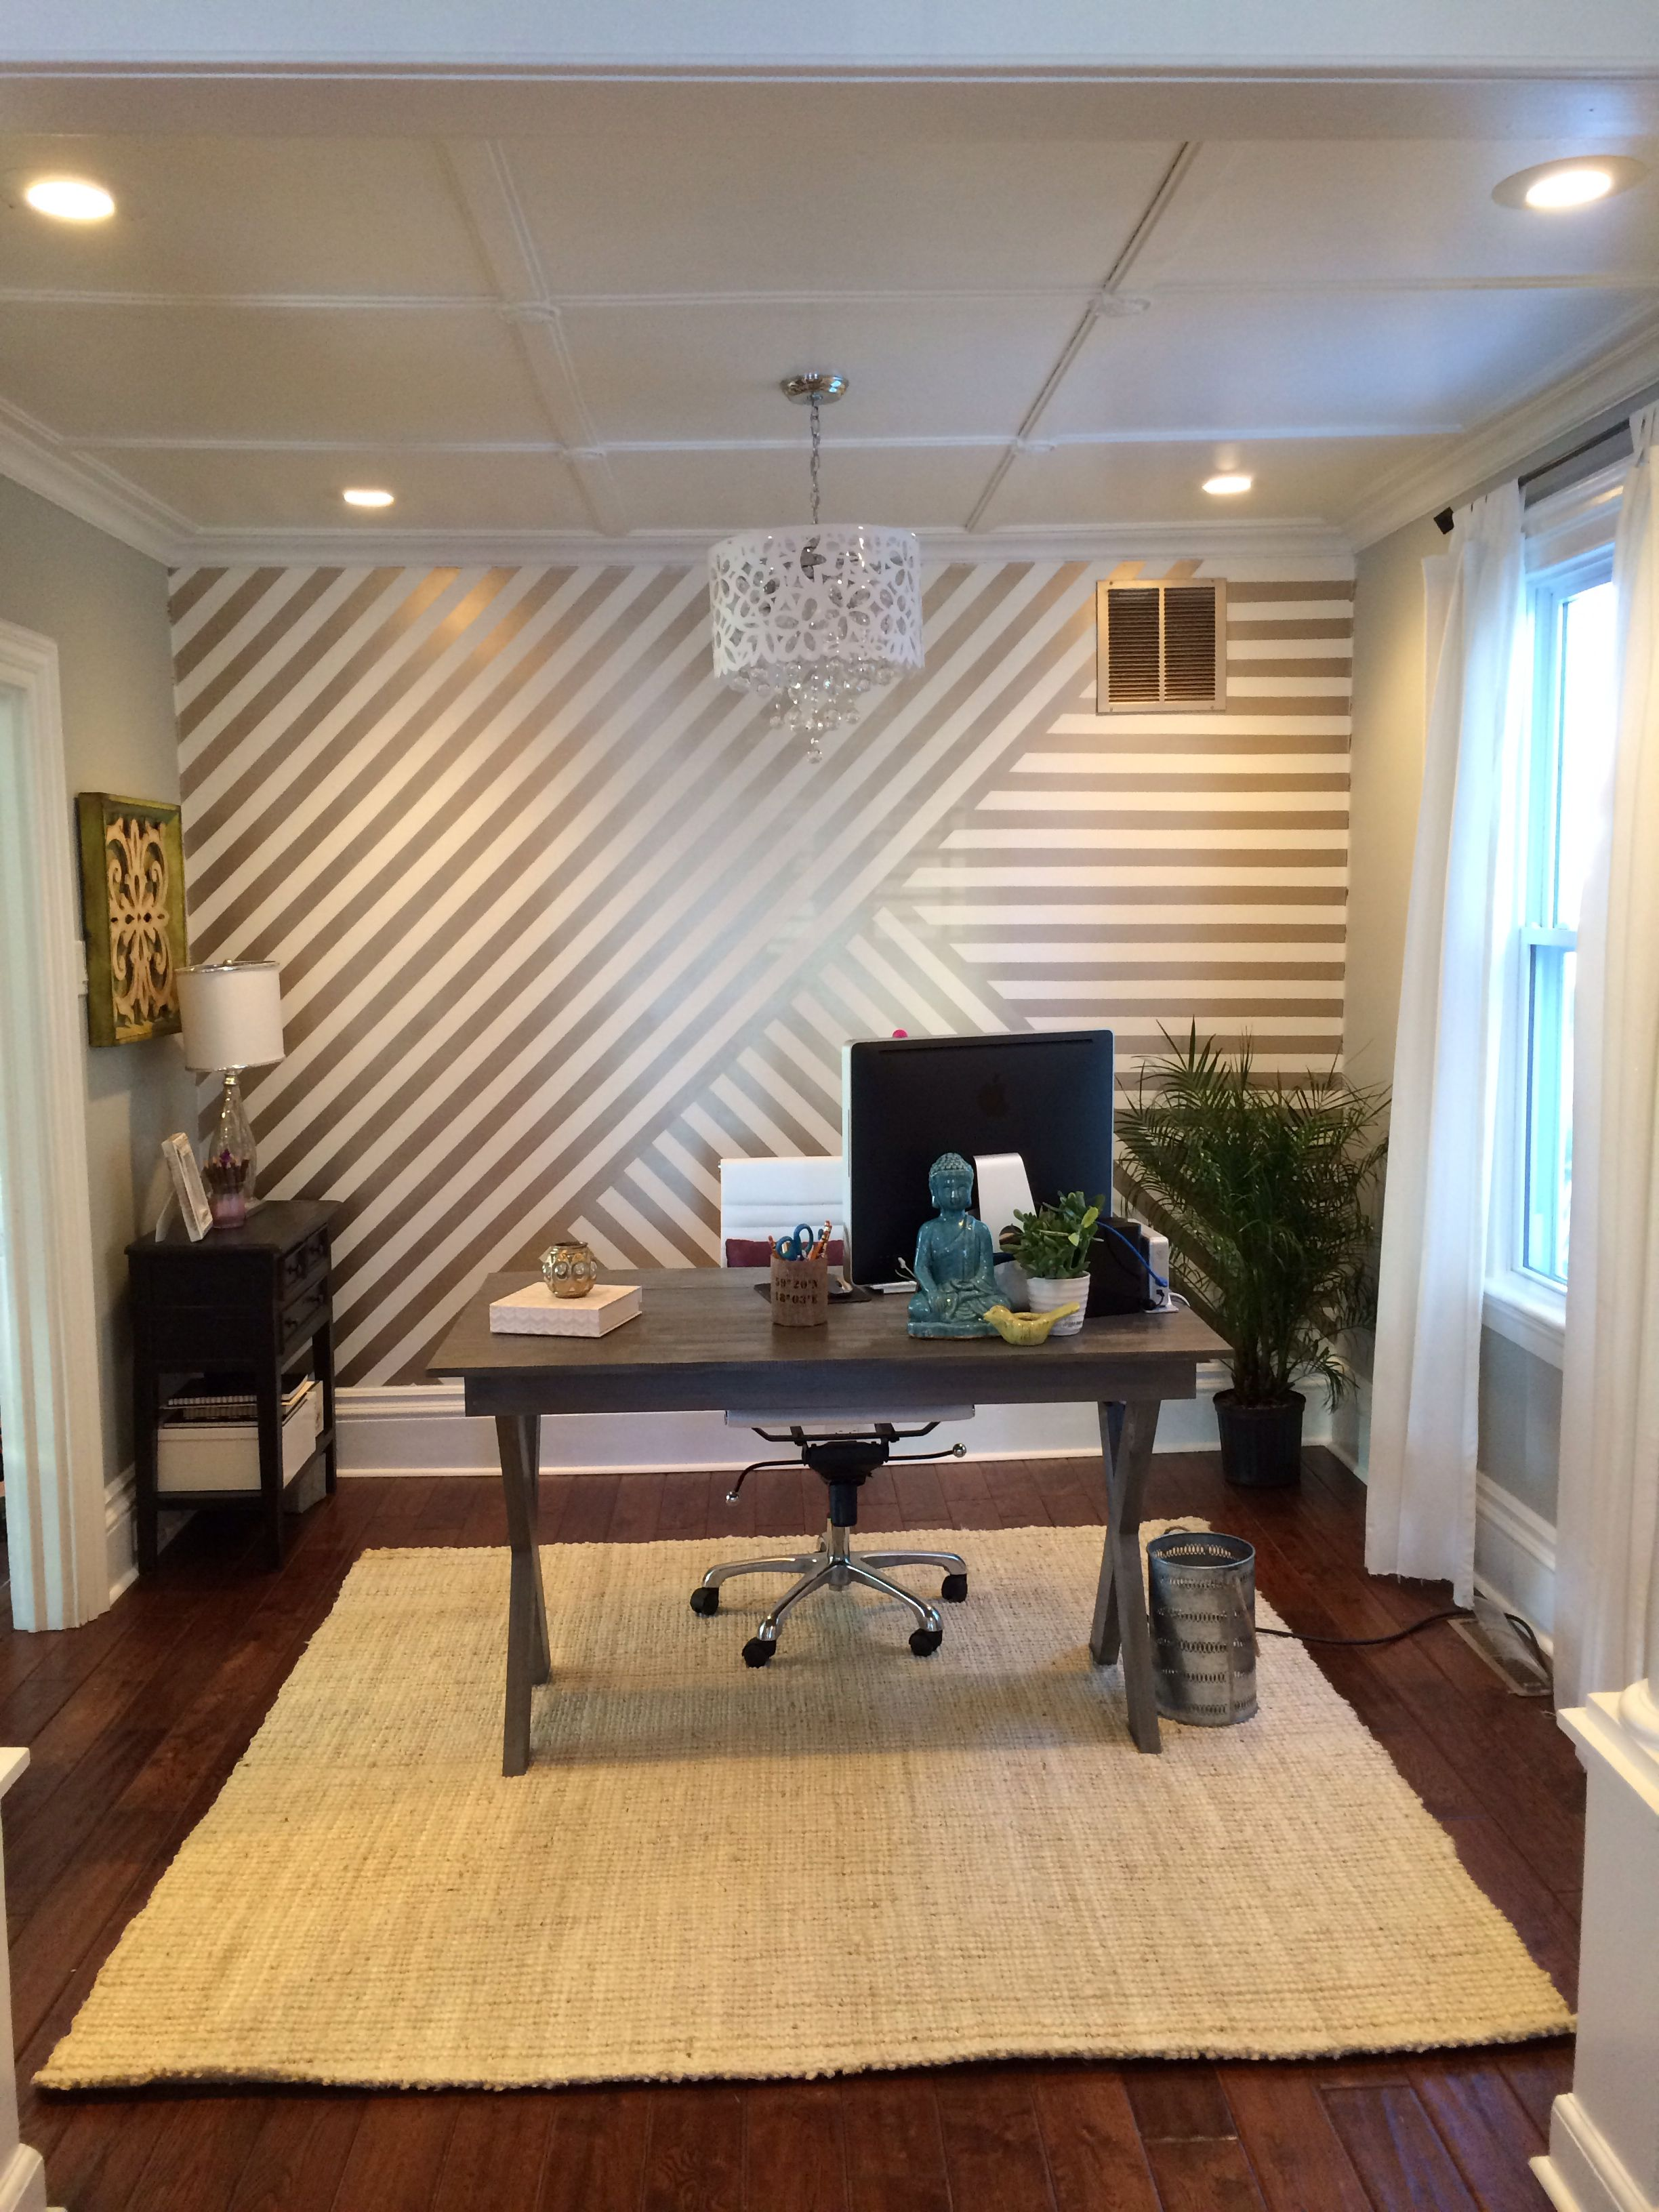 My new home office! Gold stripes maybe chevron ish? Diy